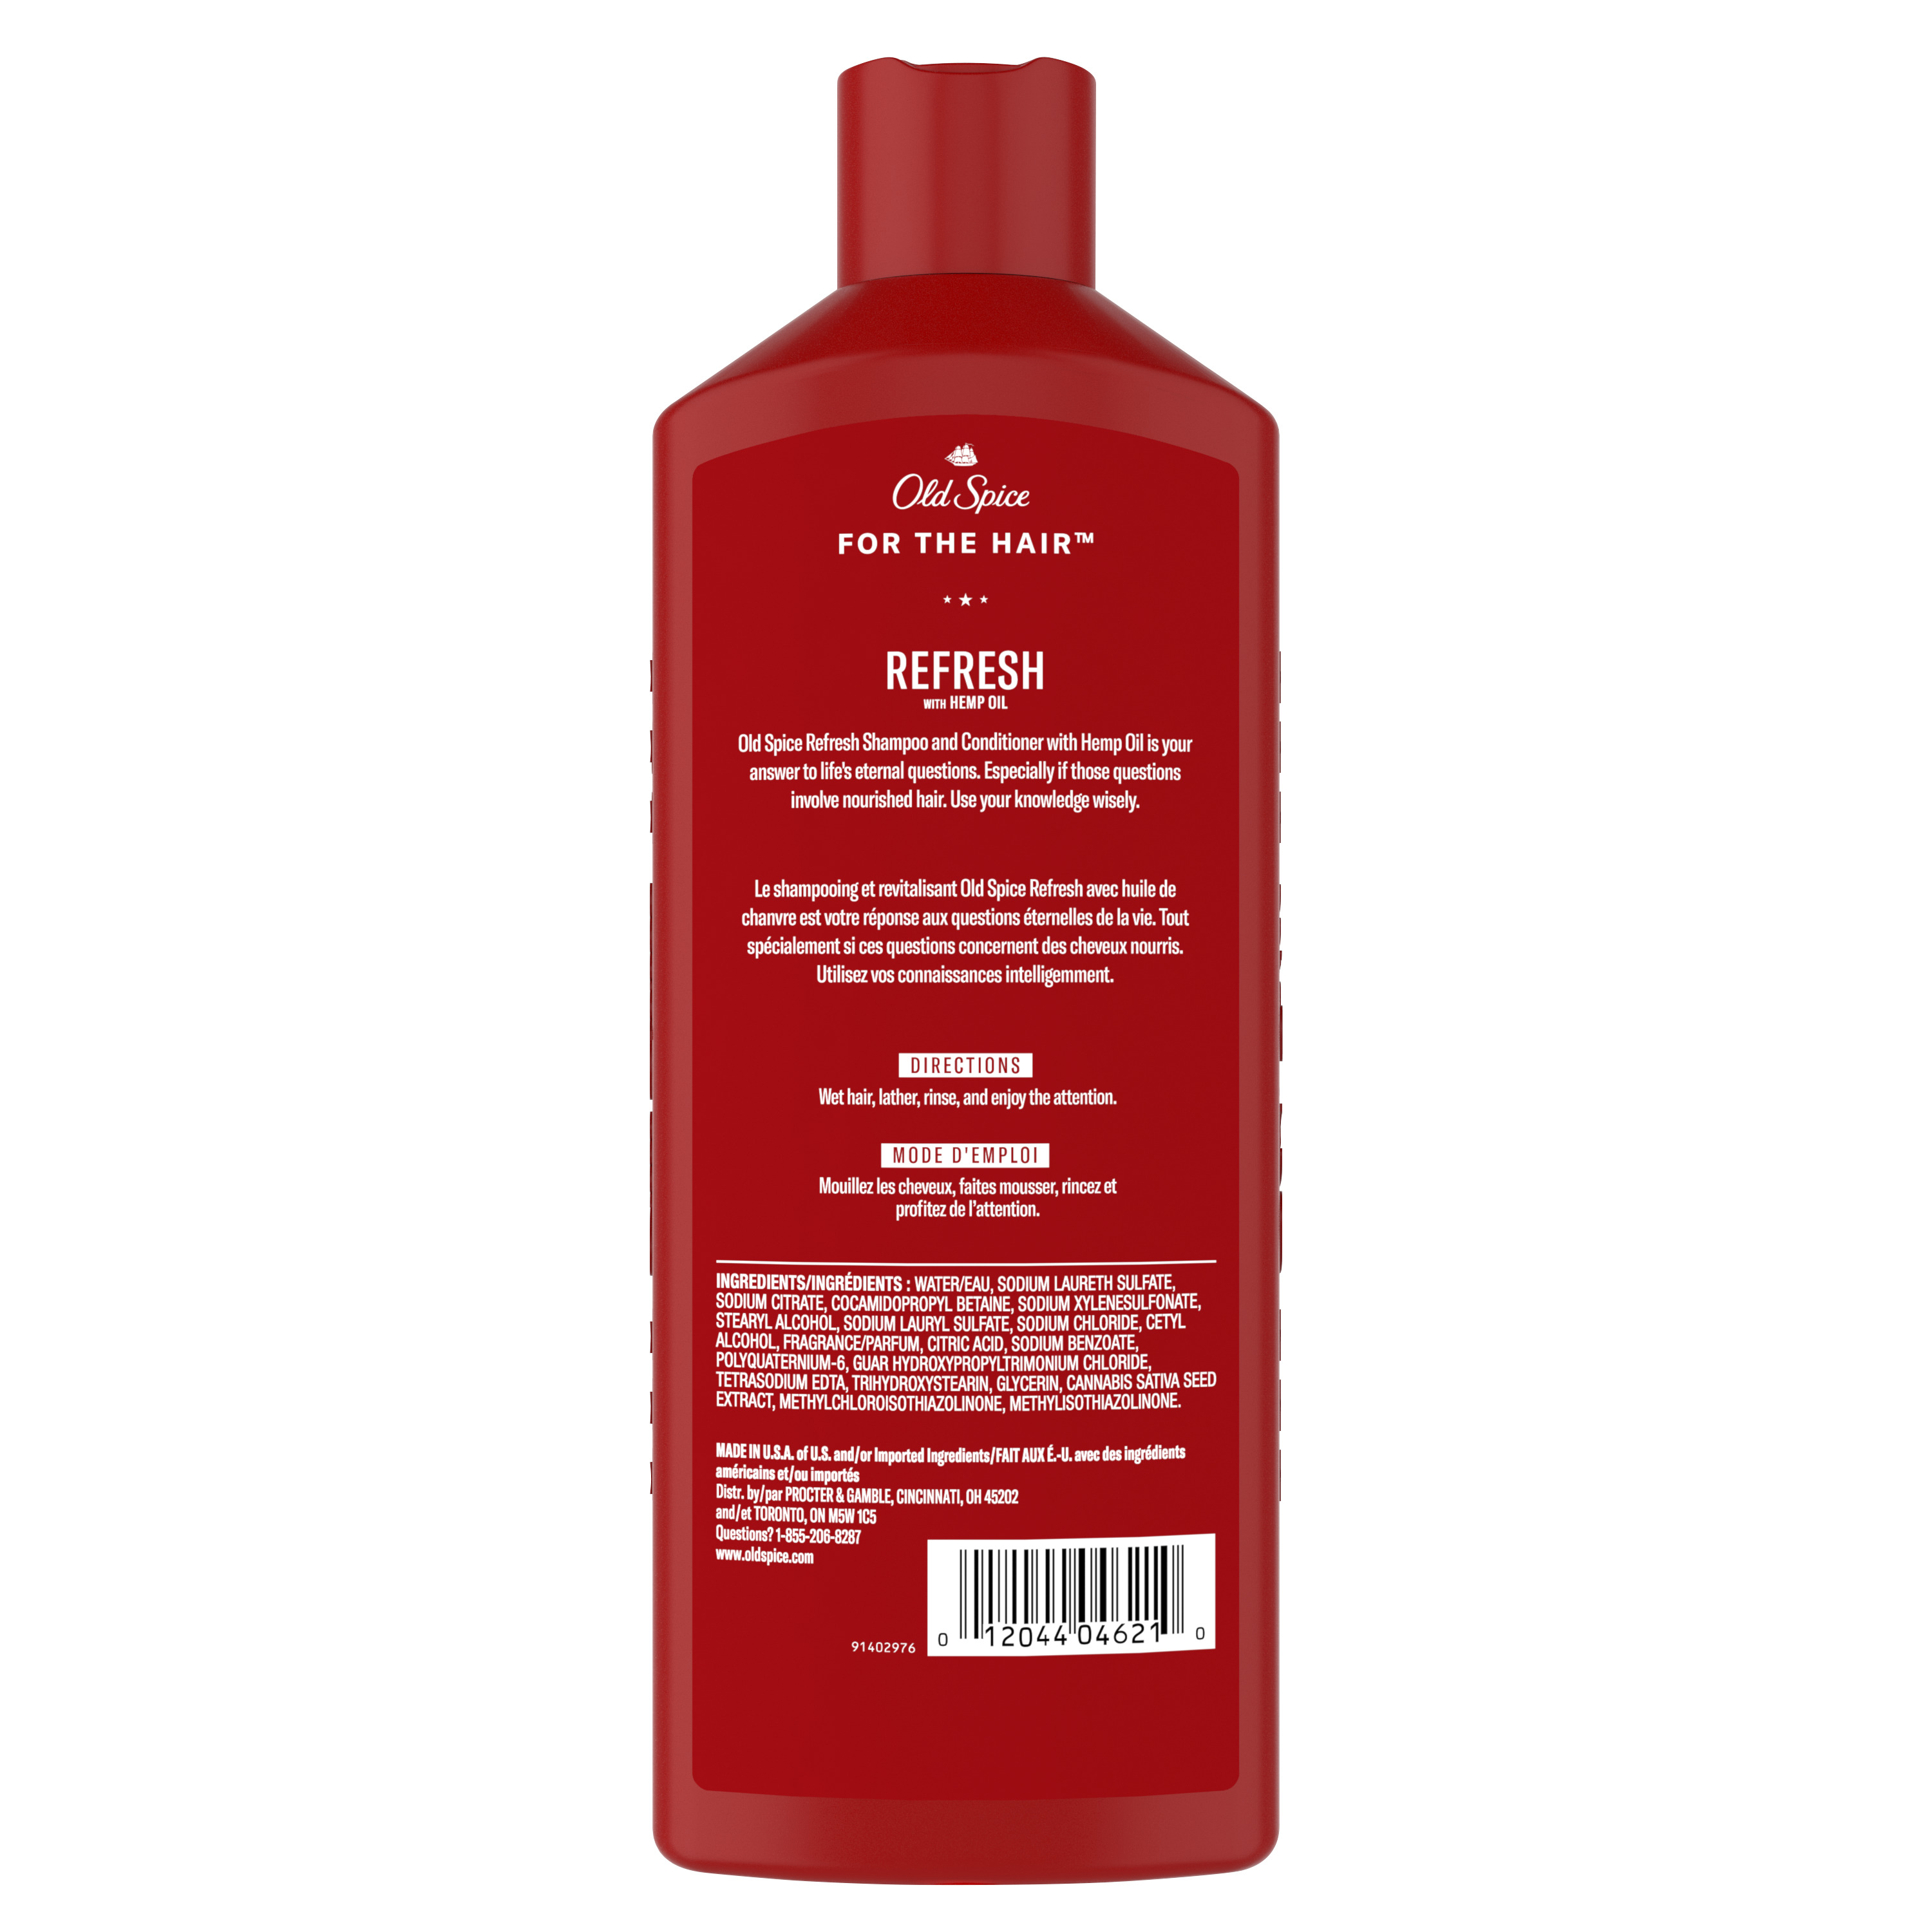 Refresh 2in1 Shampoo and Conditioner